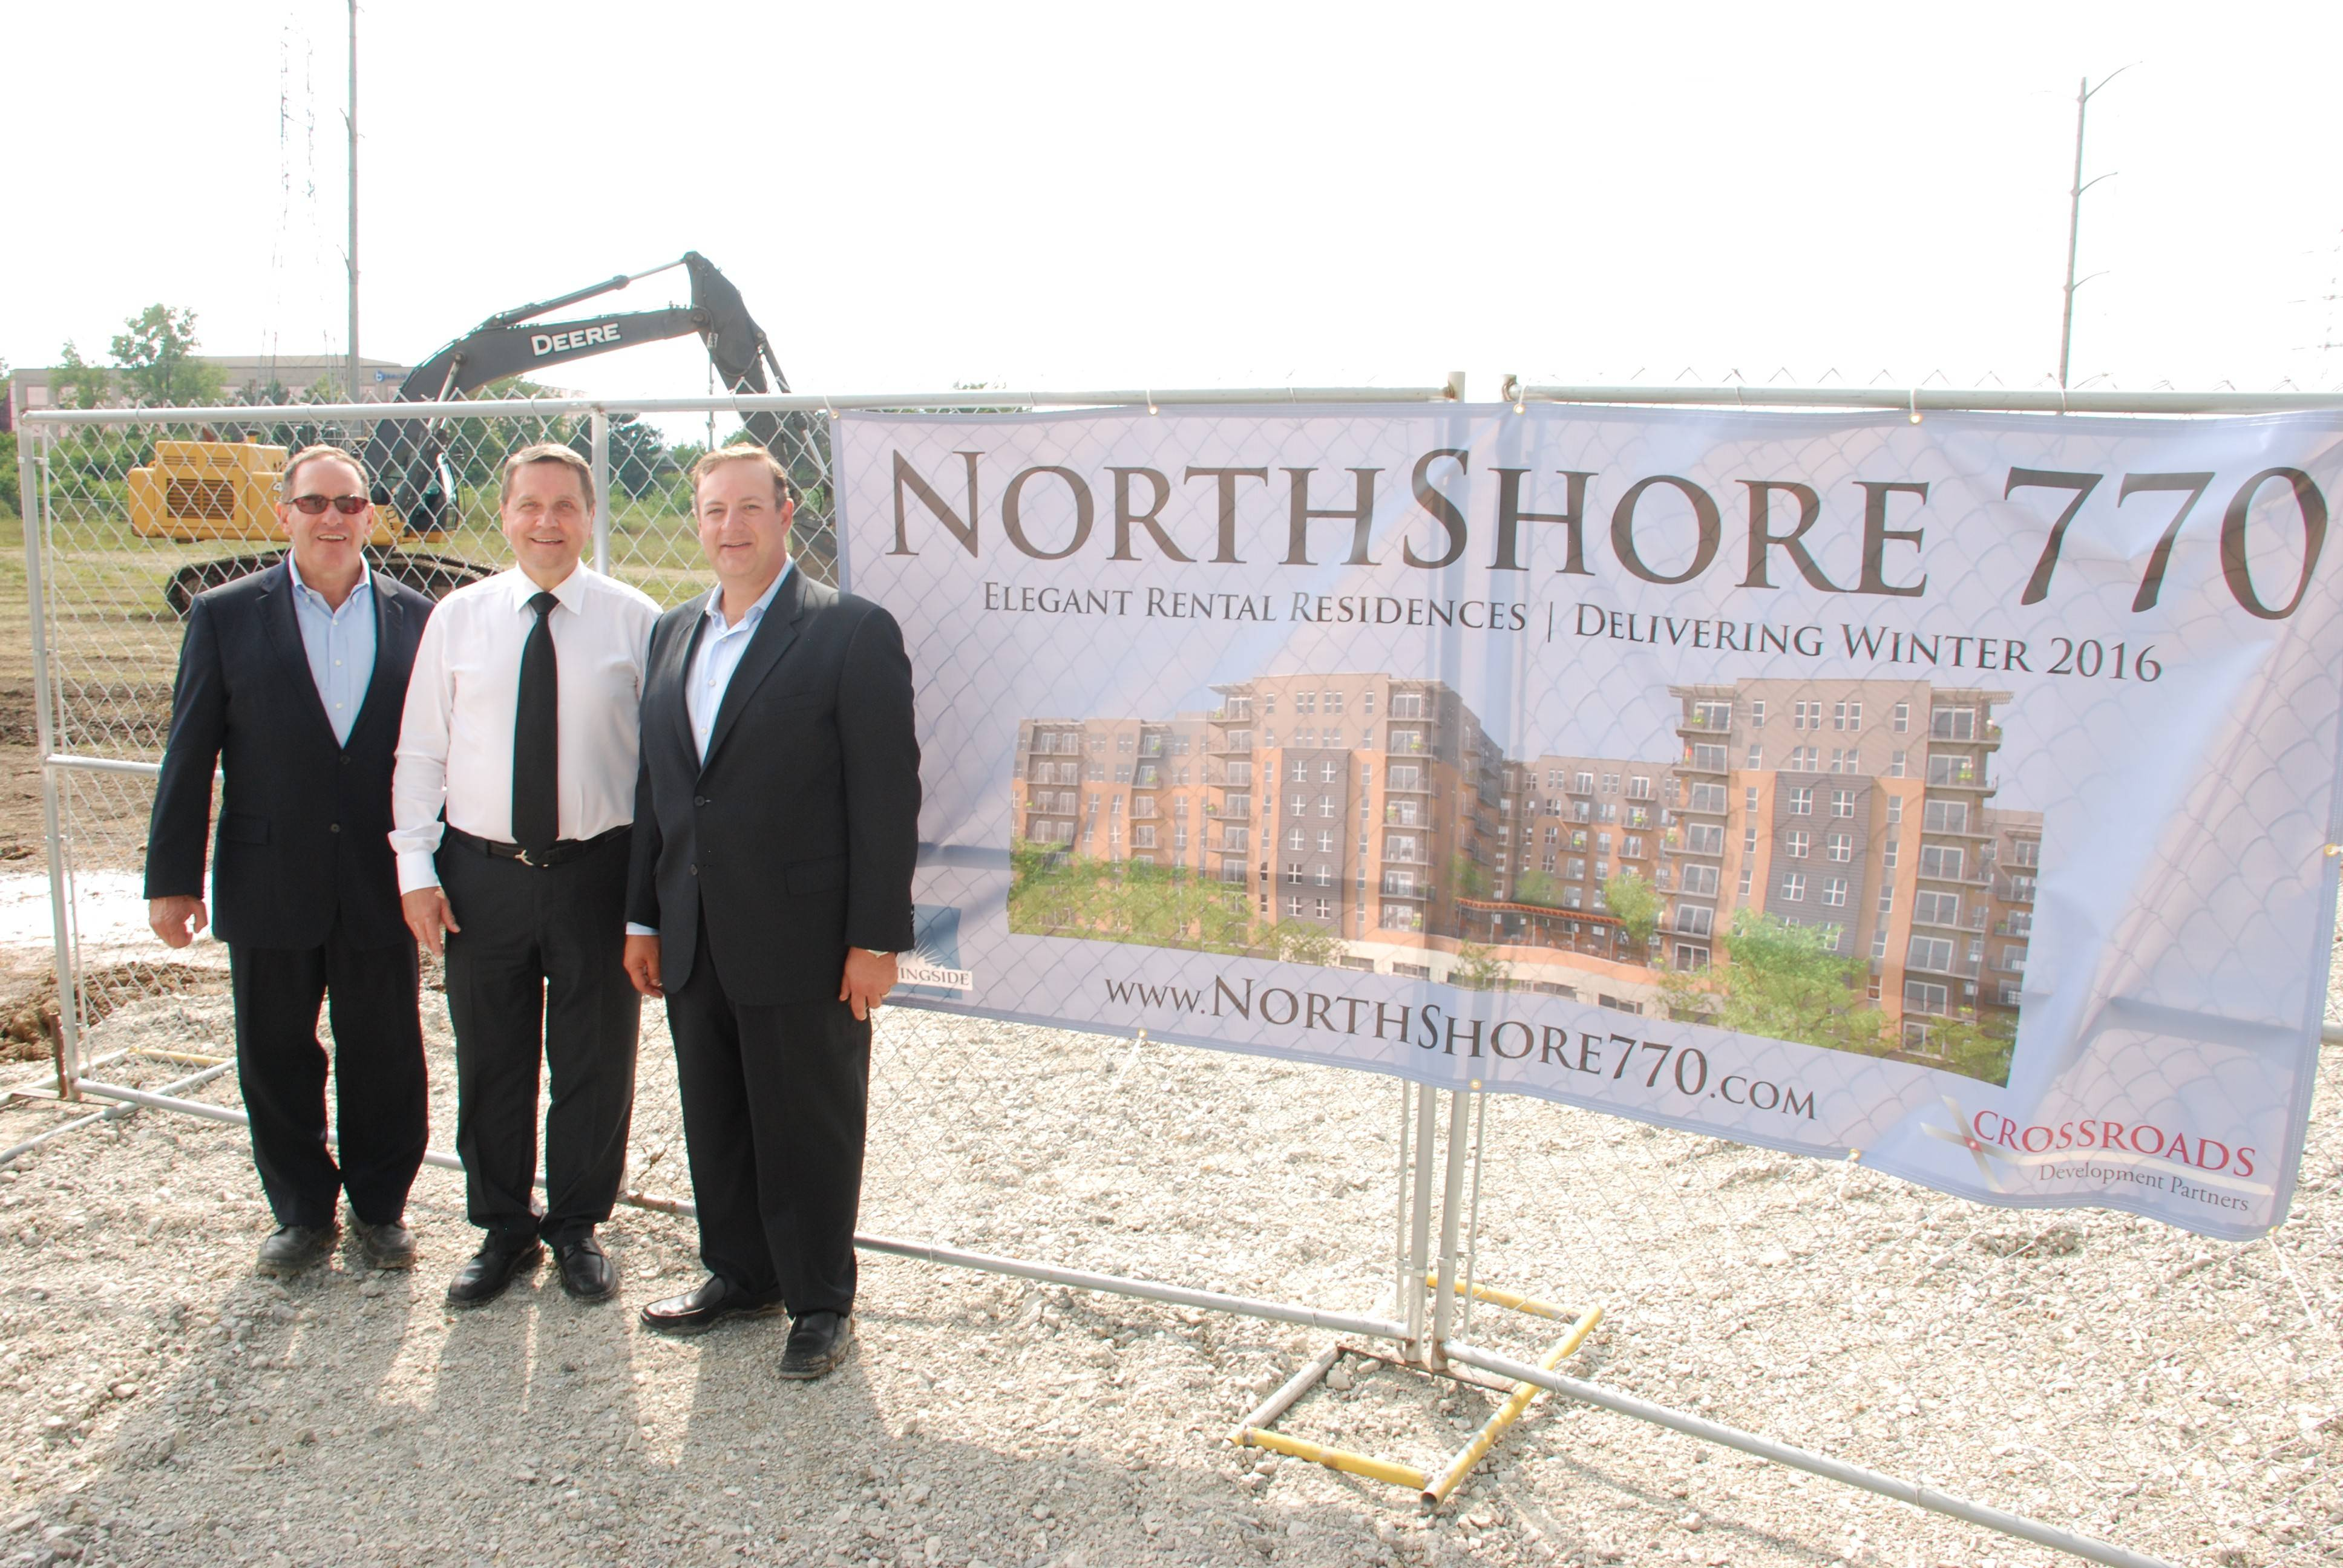 Posing in front of the construction area for the new multiuse development called Northshore 770 in Northbrook are David Strosberg, president and managing principal of Chicago-based Morningside Group, Bob Mariano of Inverness and CEO of Marianos', and Michael Nortman, principal of Crossroads Development Partners.